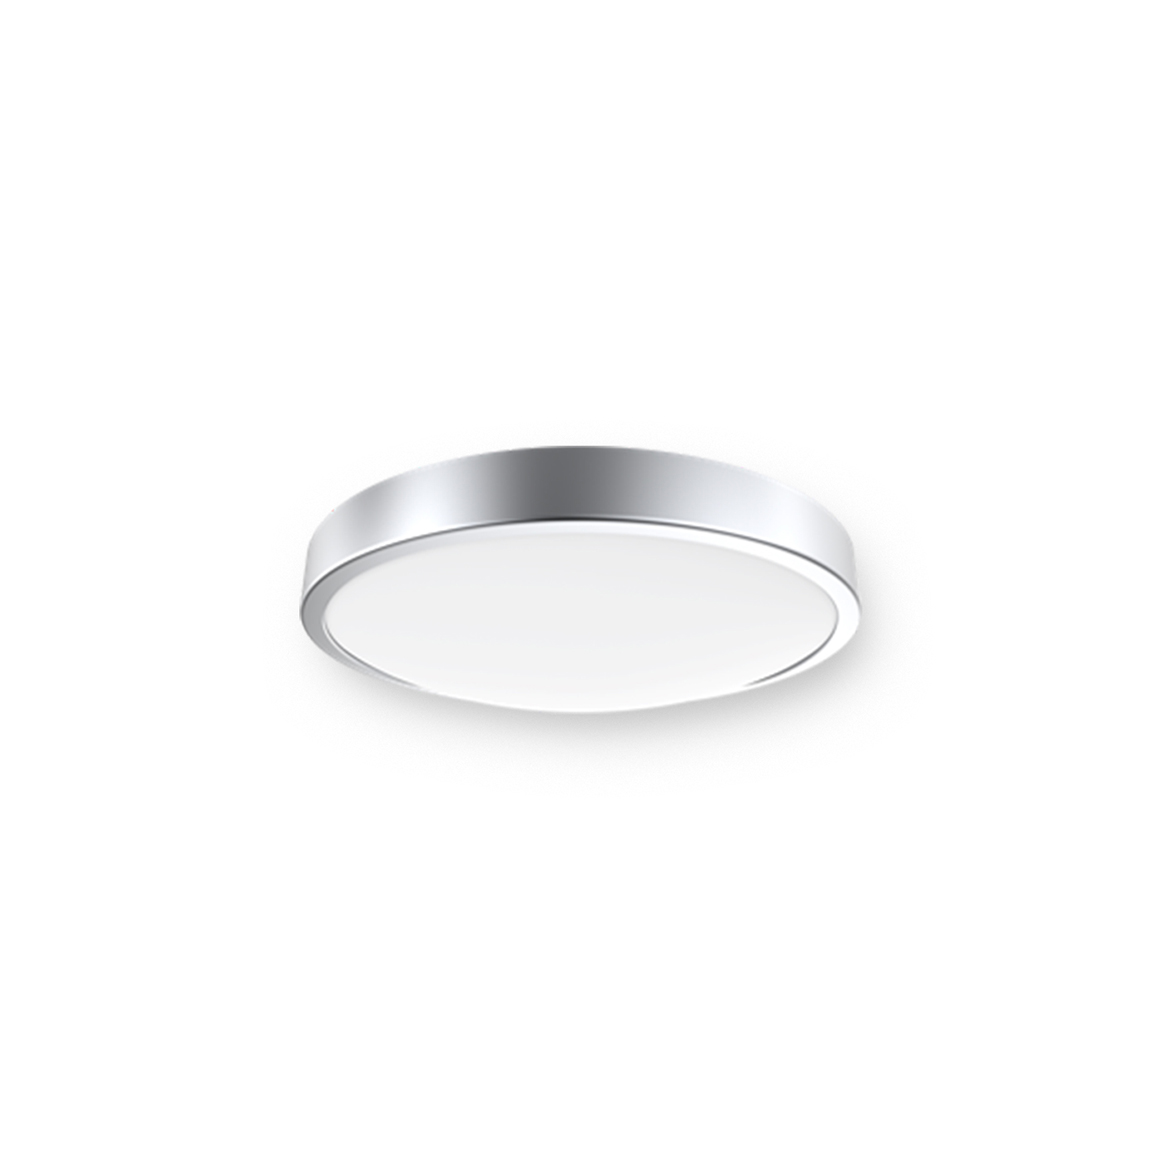 Ordinary Ceiling  Light_C4b